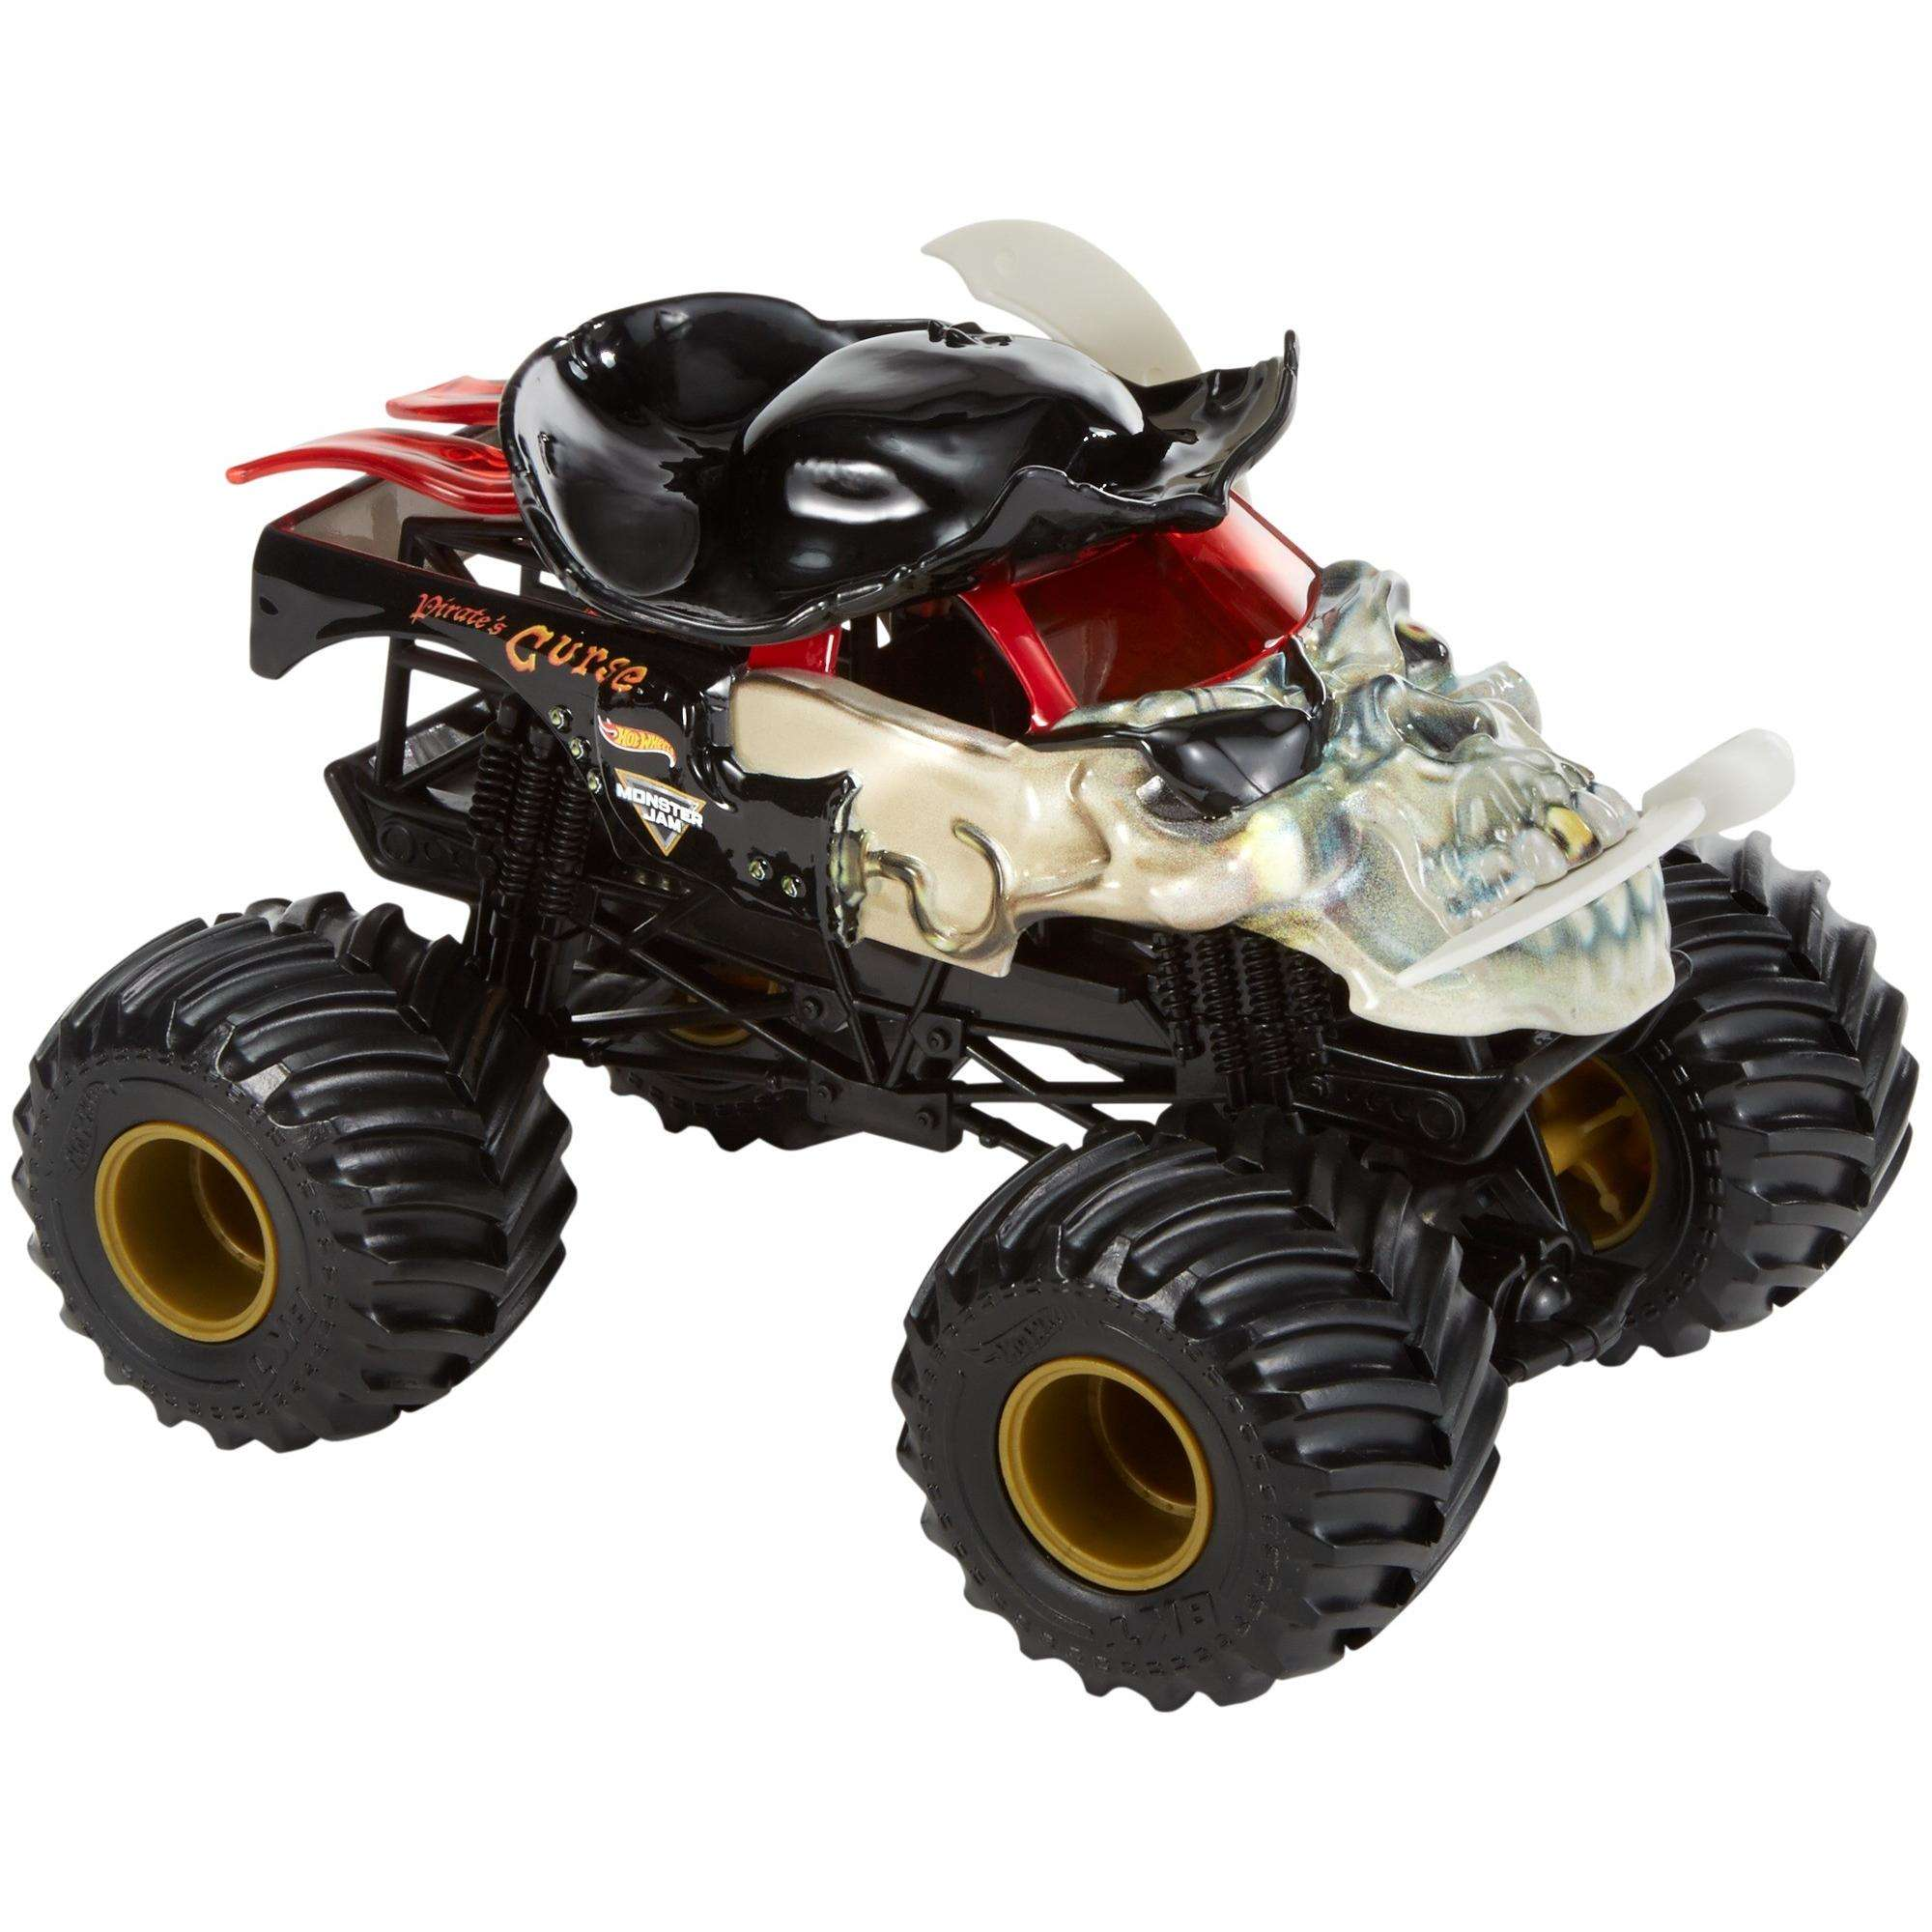 Hot Wheels Monster Jam Pirate's Curse Vehicle by Mattel